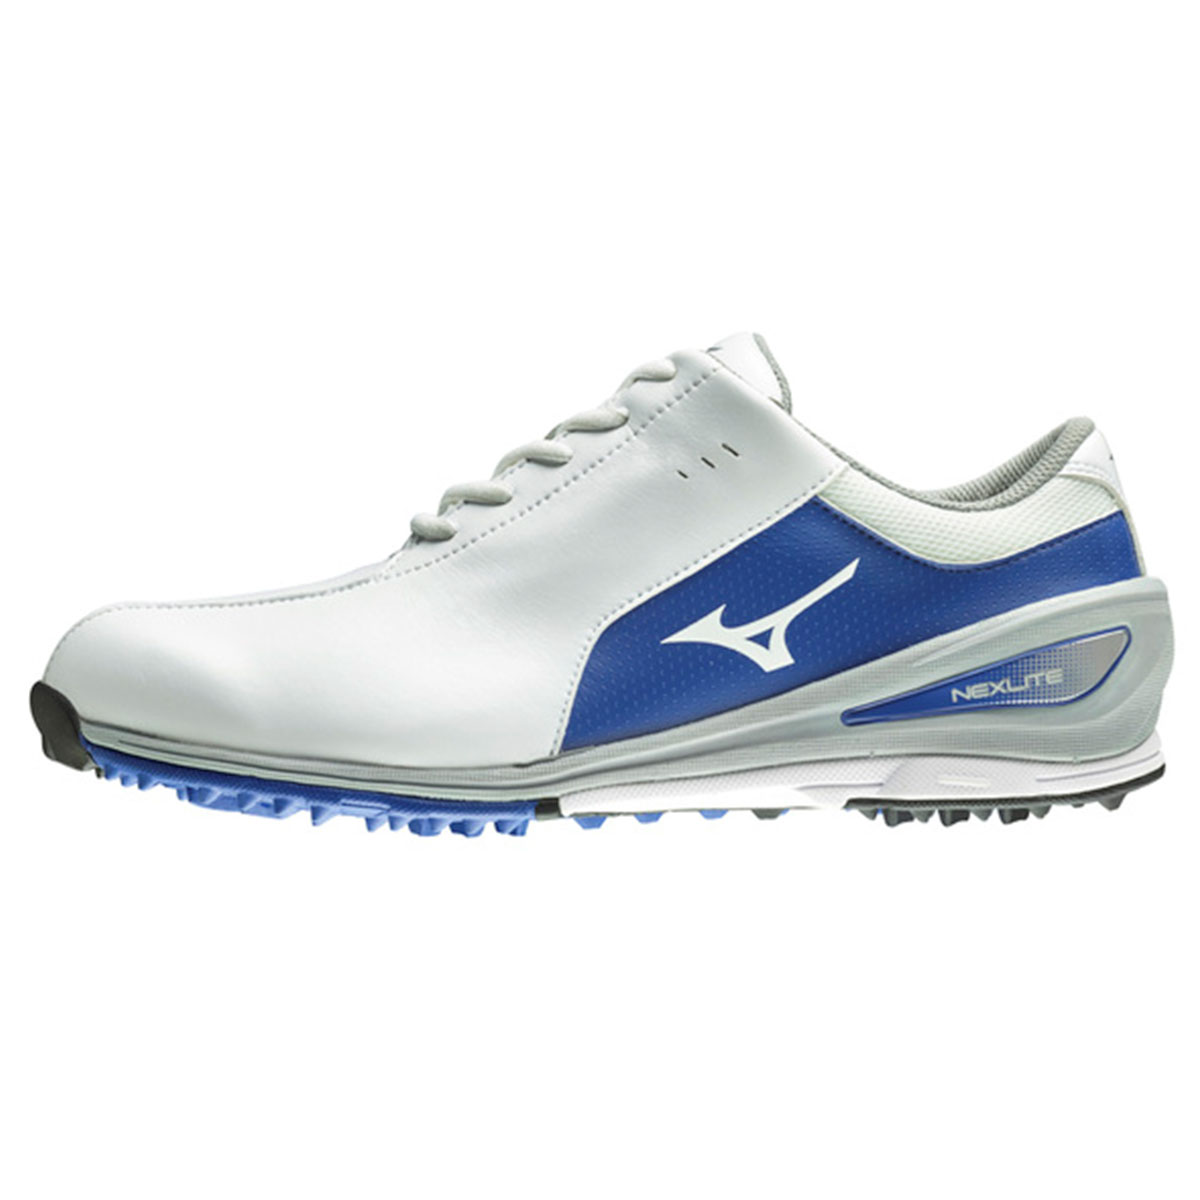 Ladies Golf Shoes Size